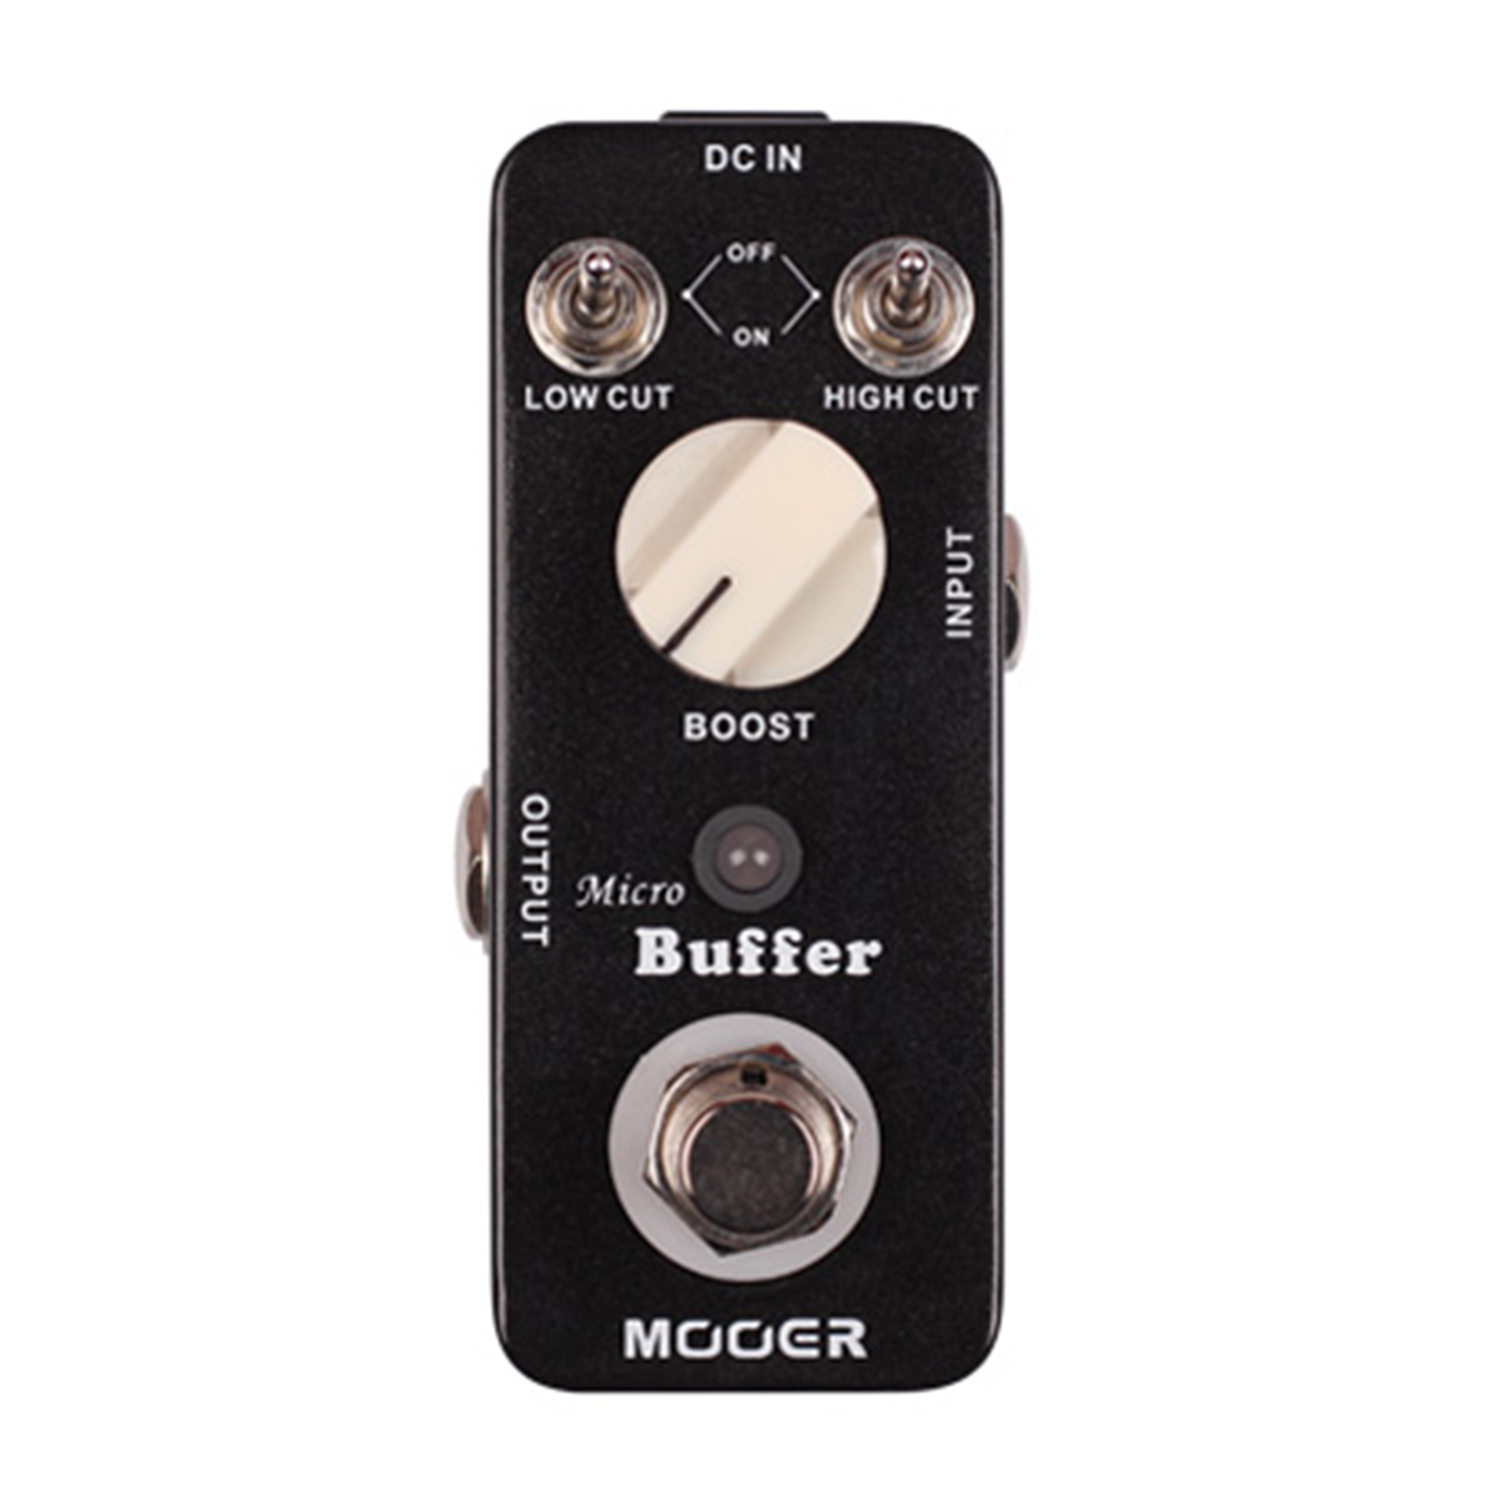 Mooer Micro Buffer Guitar Effect Pedal High Cut Low Cut Switch Boost Knob Buffer Effects mooer ensemble queen bass chorus effects effect pedal true bypass rate knob high quality components depth knob rich sound